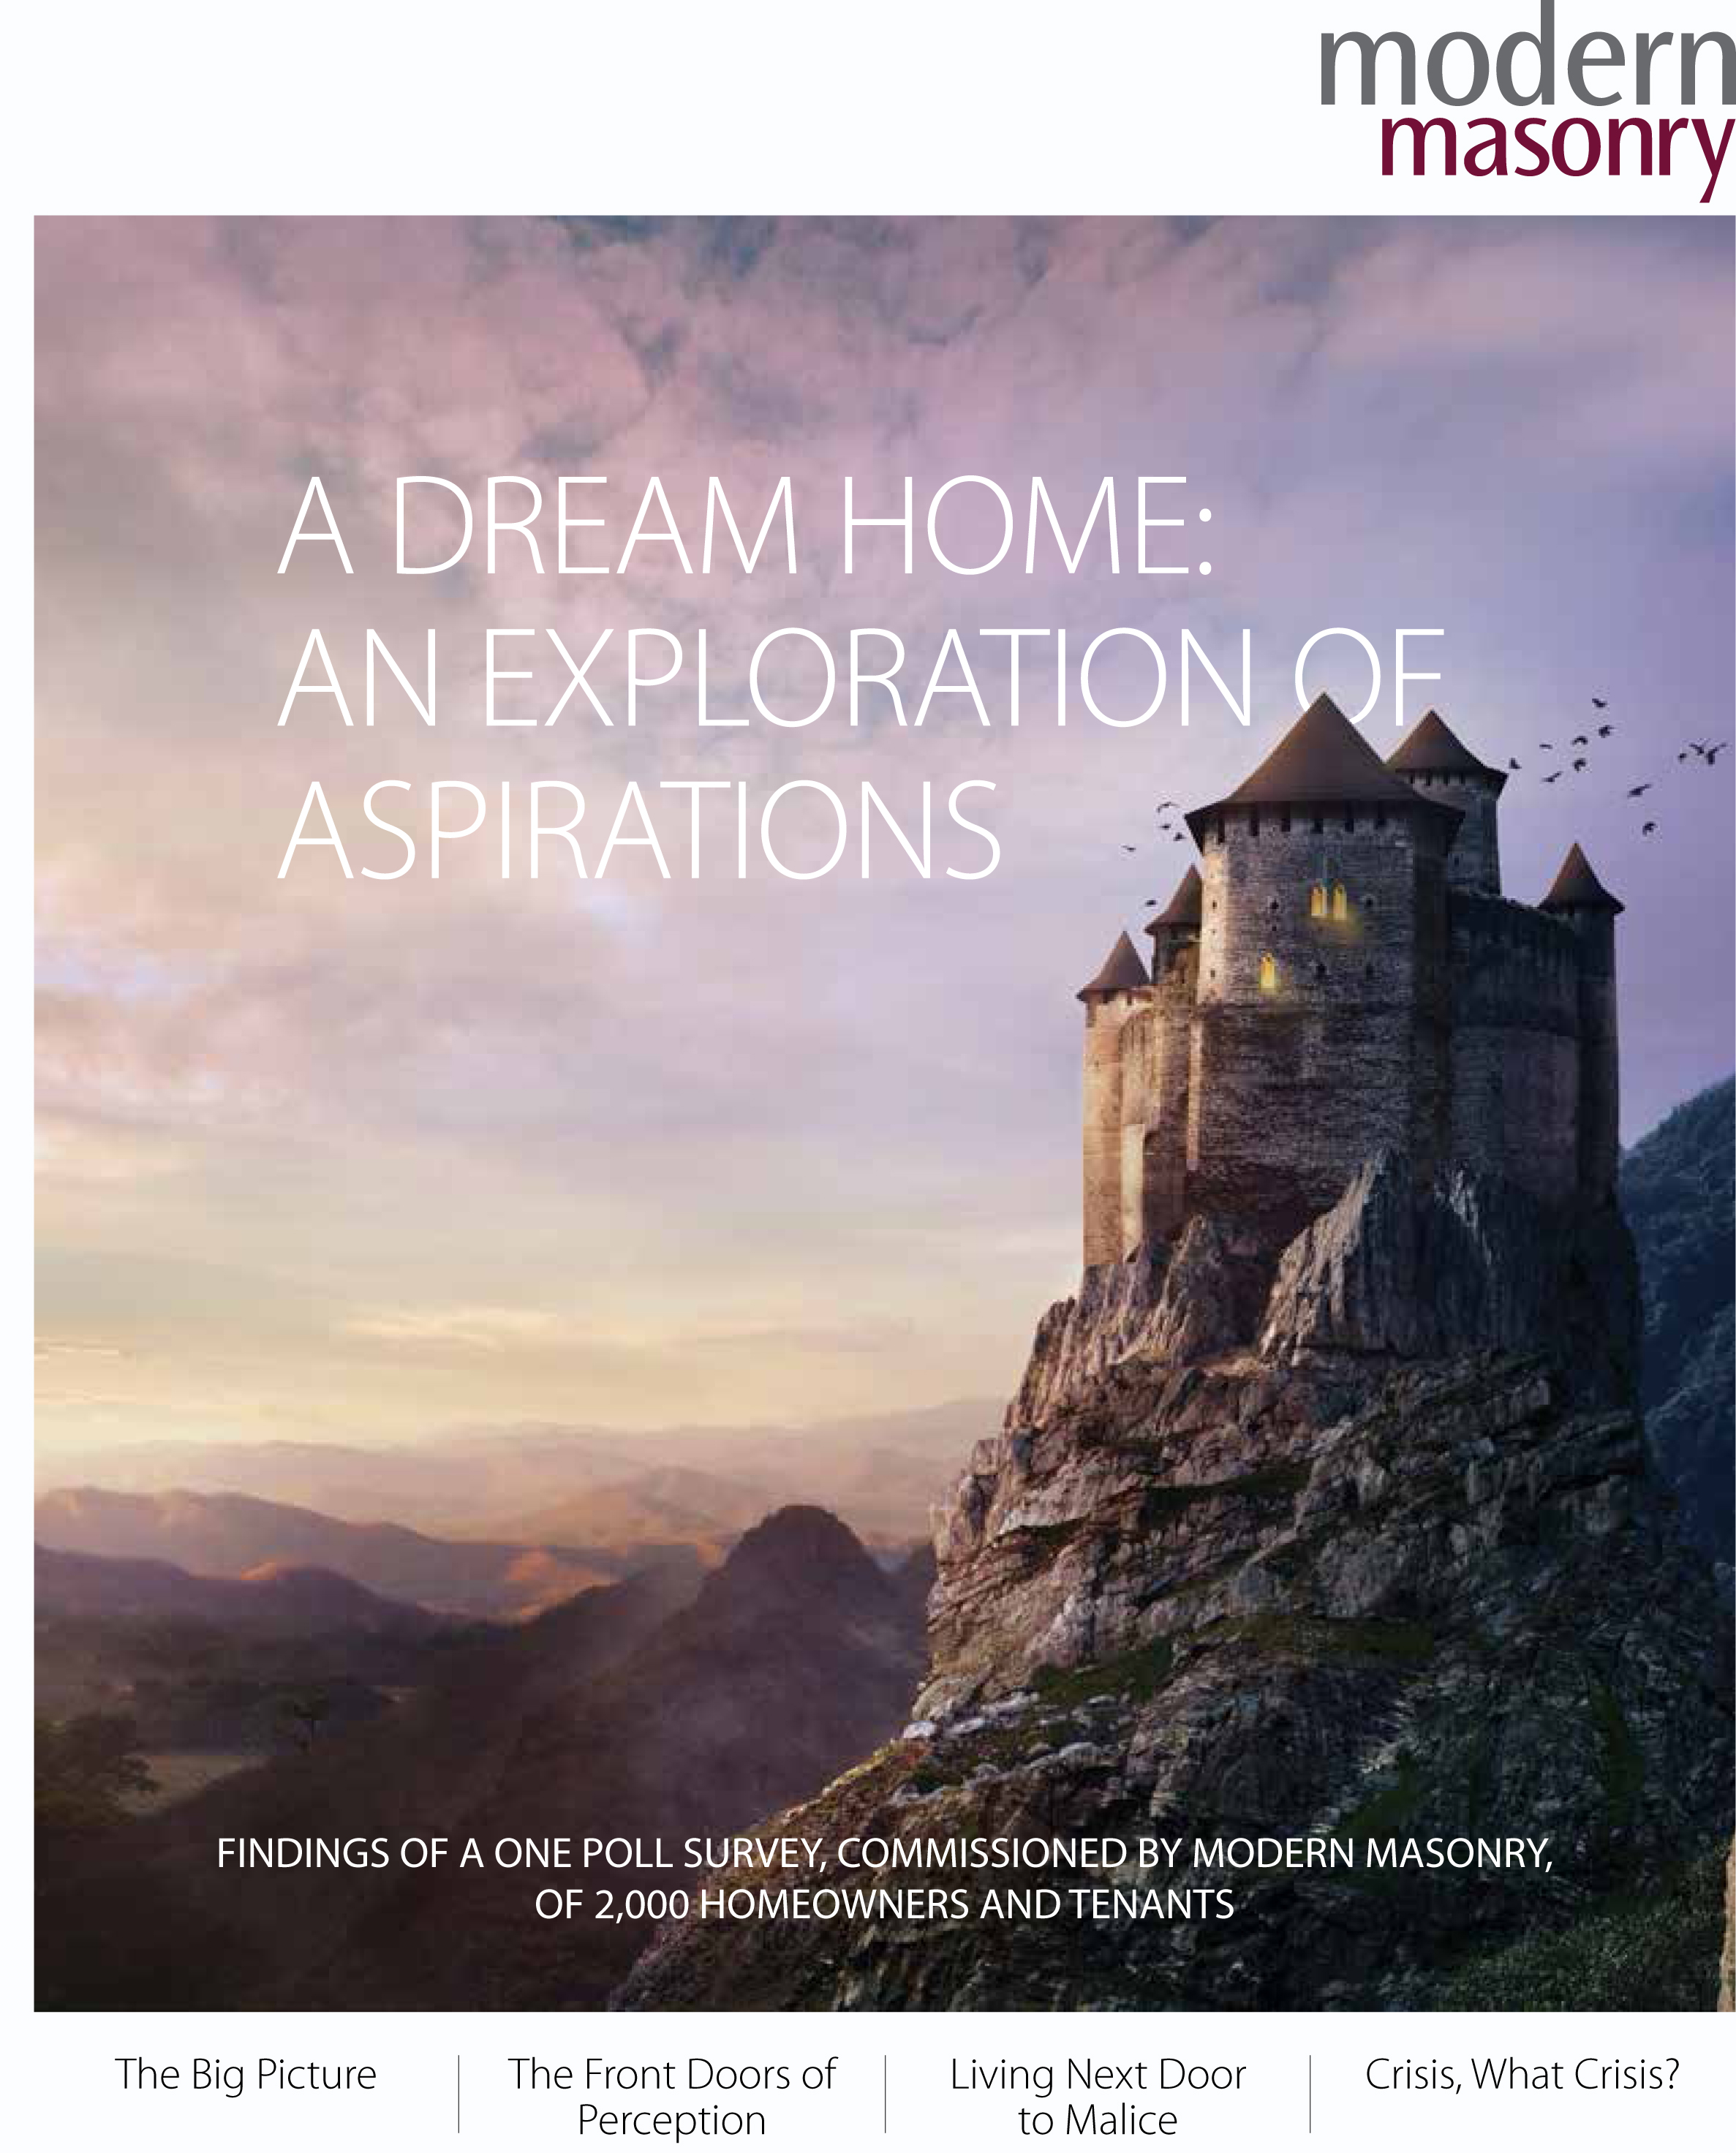 Research launched about UK homebuying aspirations